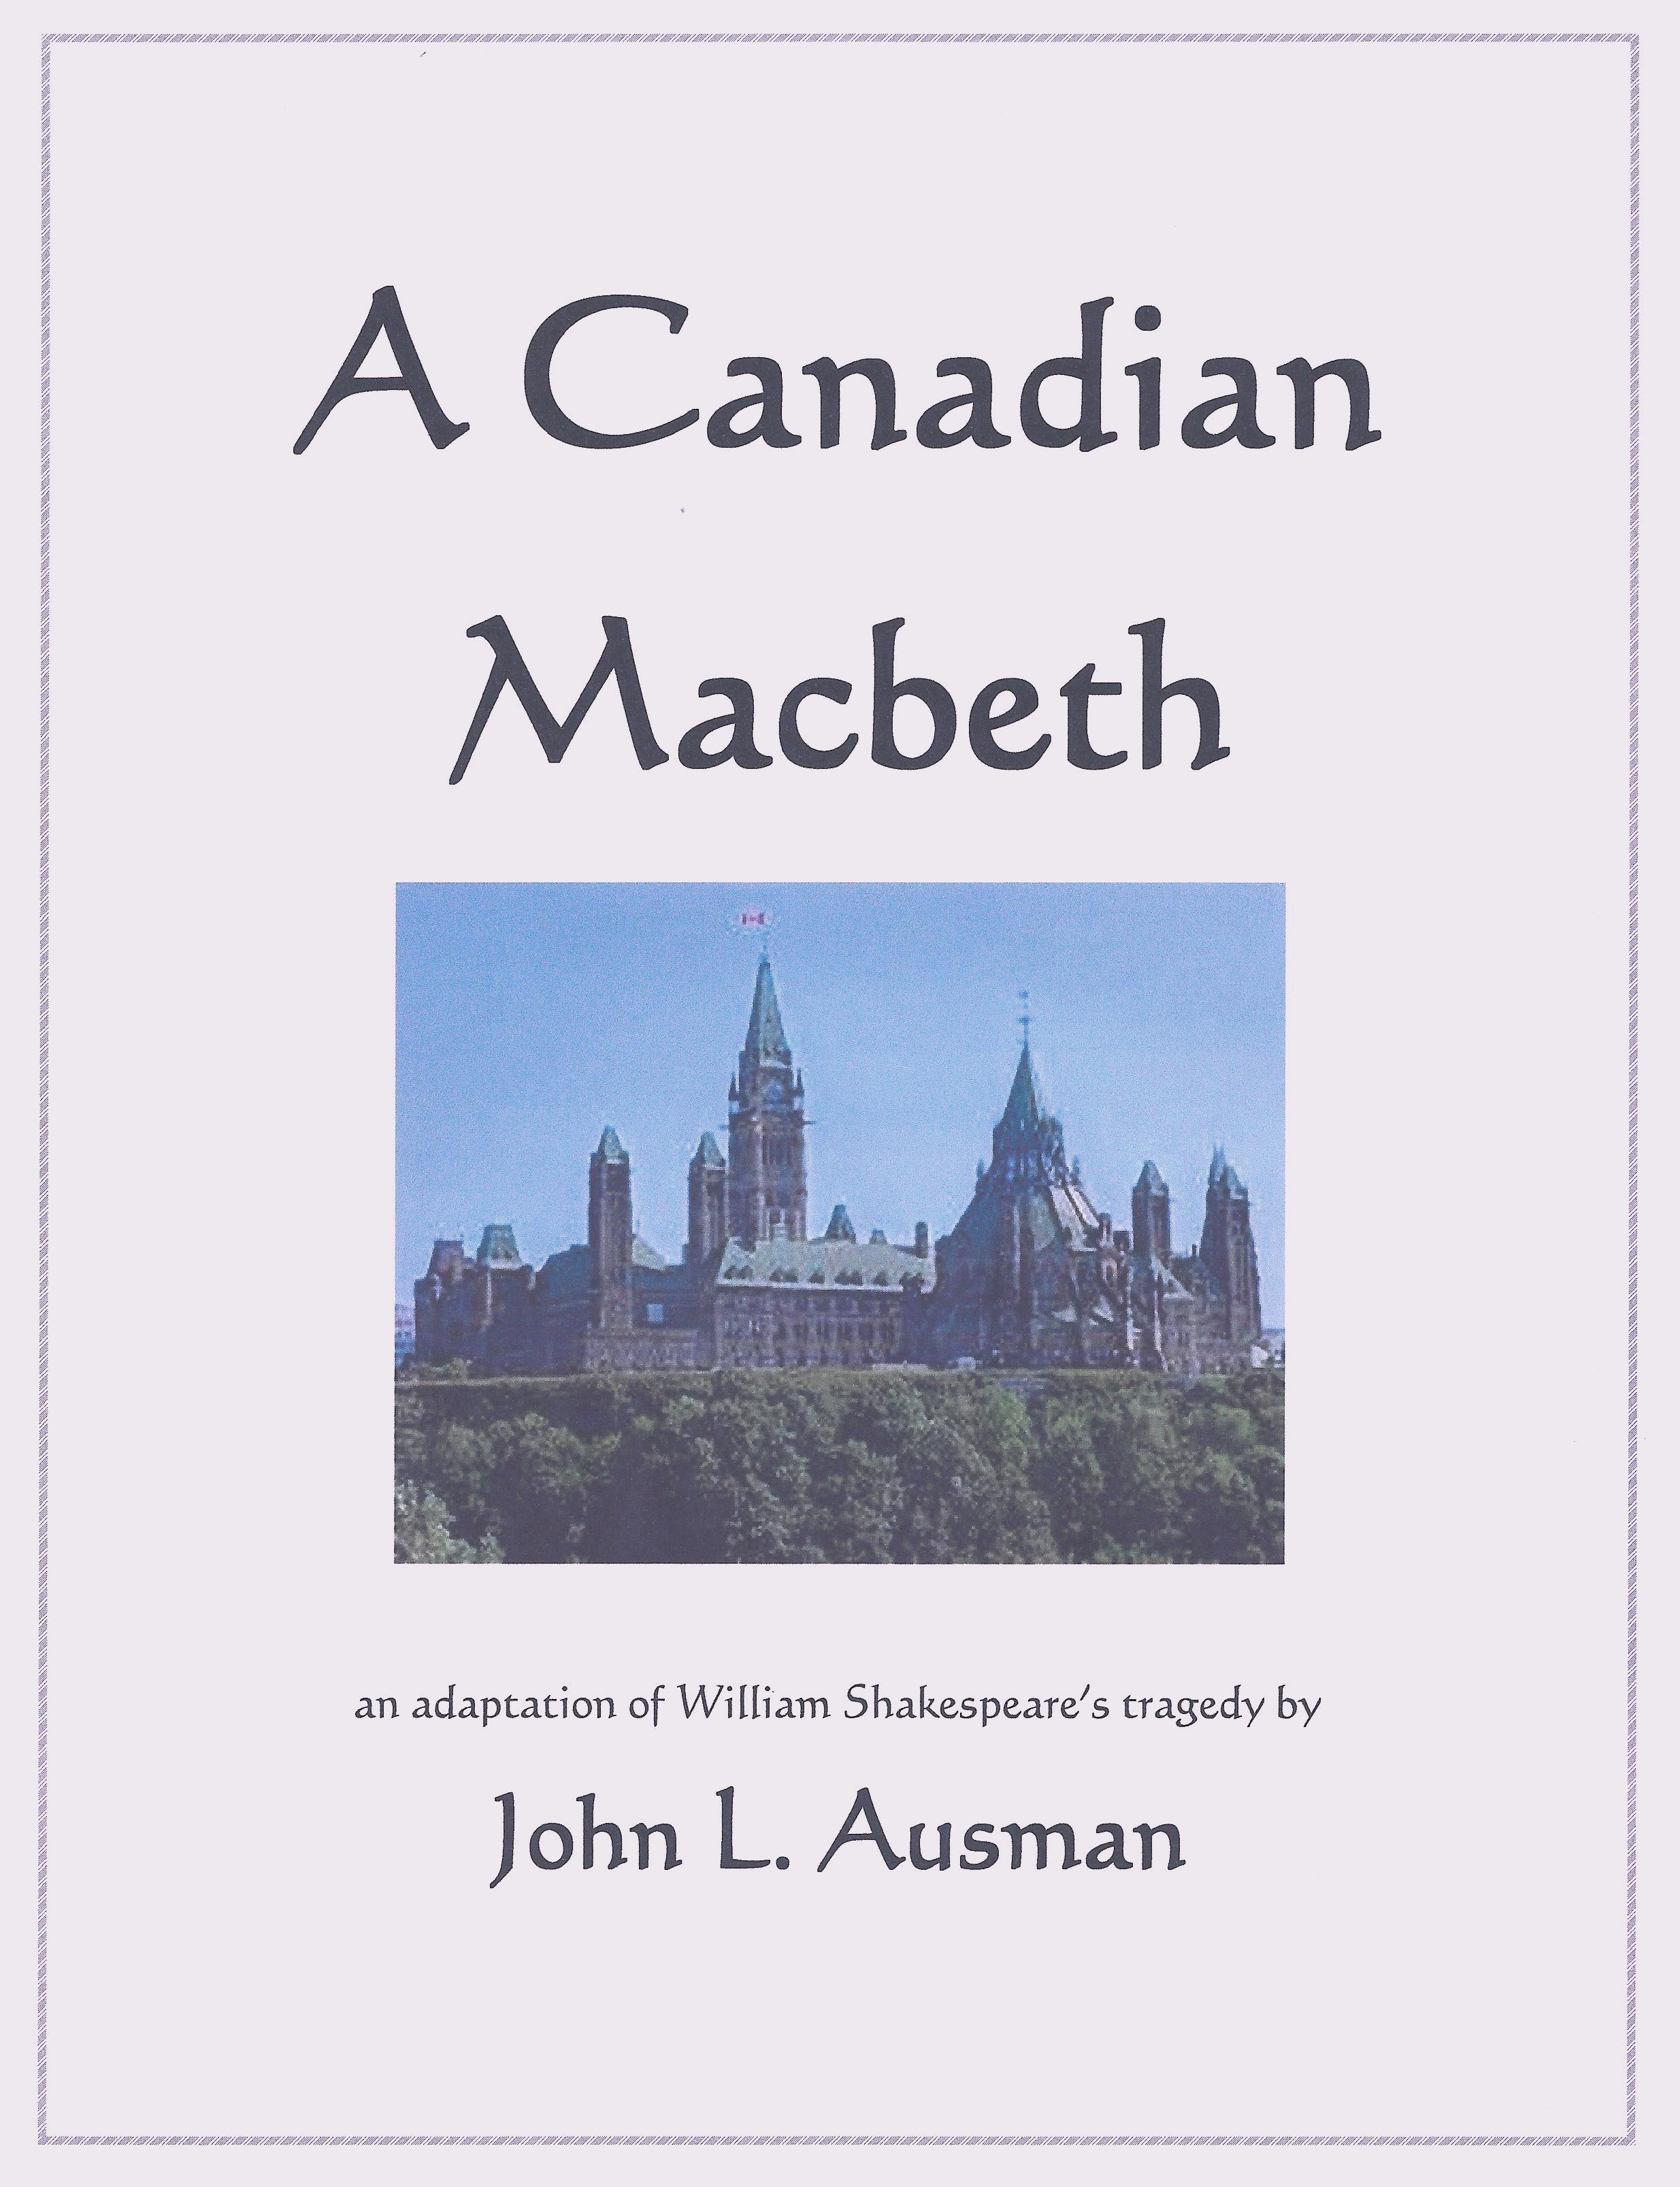 A Canadian Macbeth